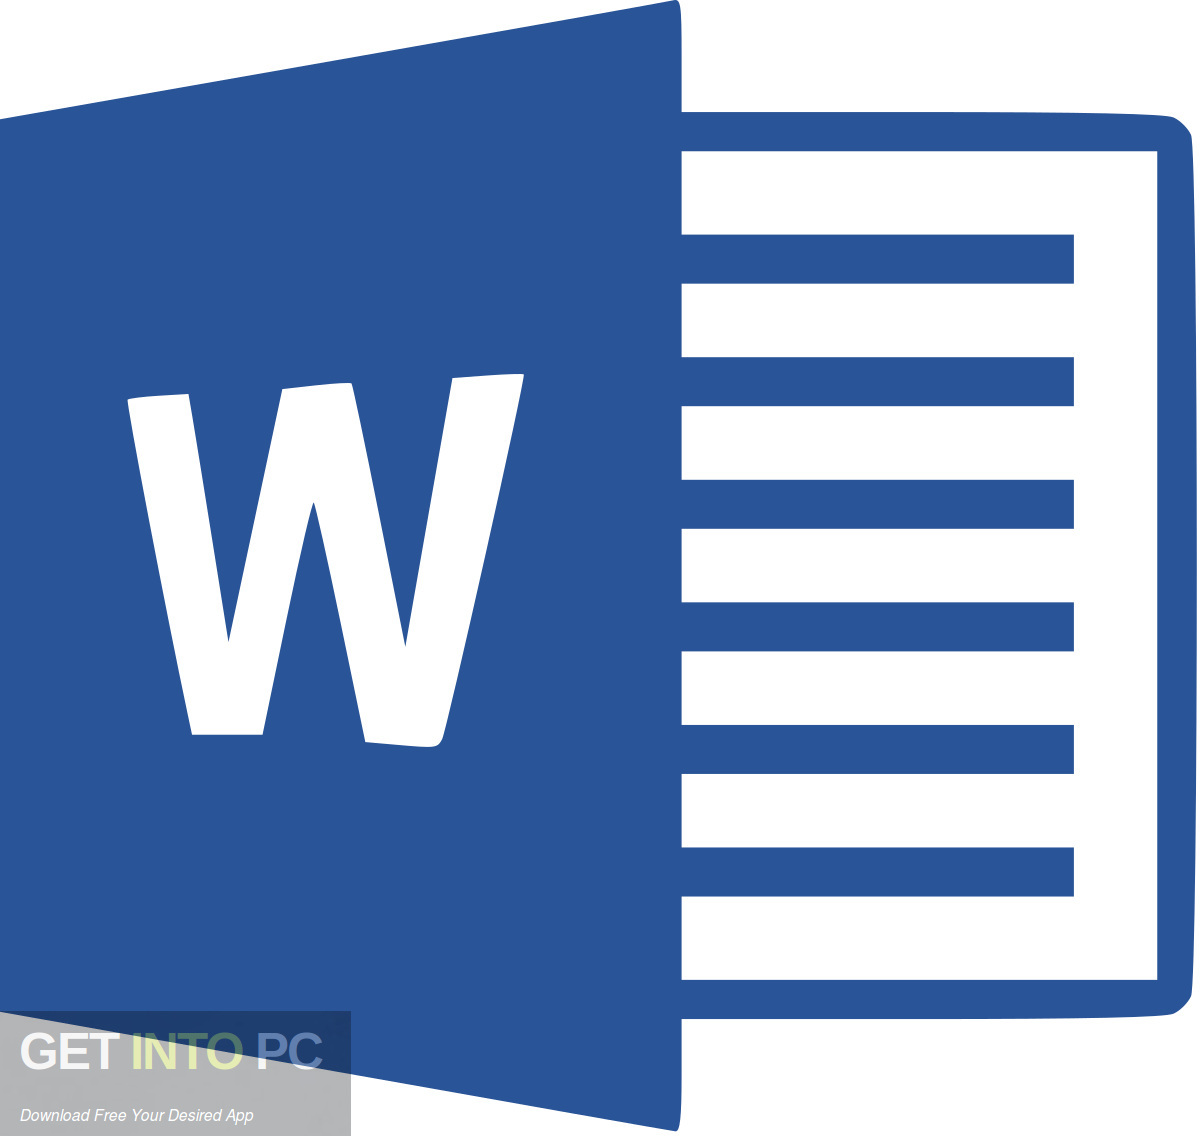 ms word 2016 download free for pc